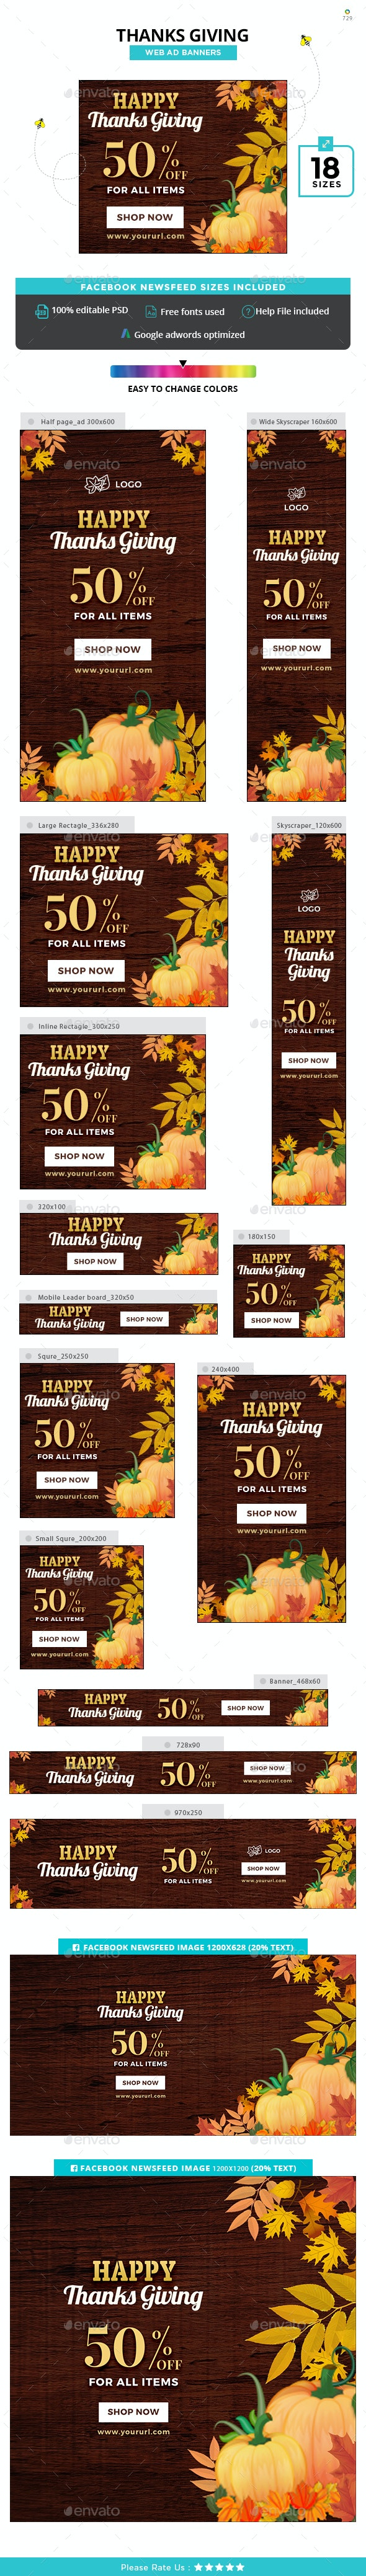 Thanks Giving Banners - Banners & Ads Web Elements